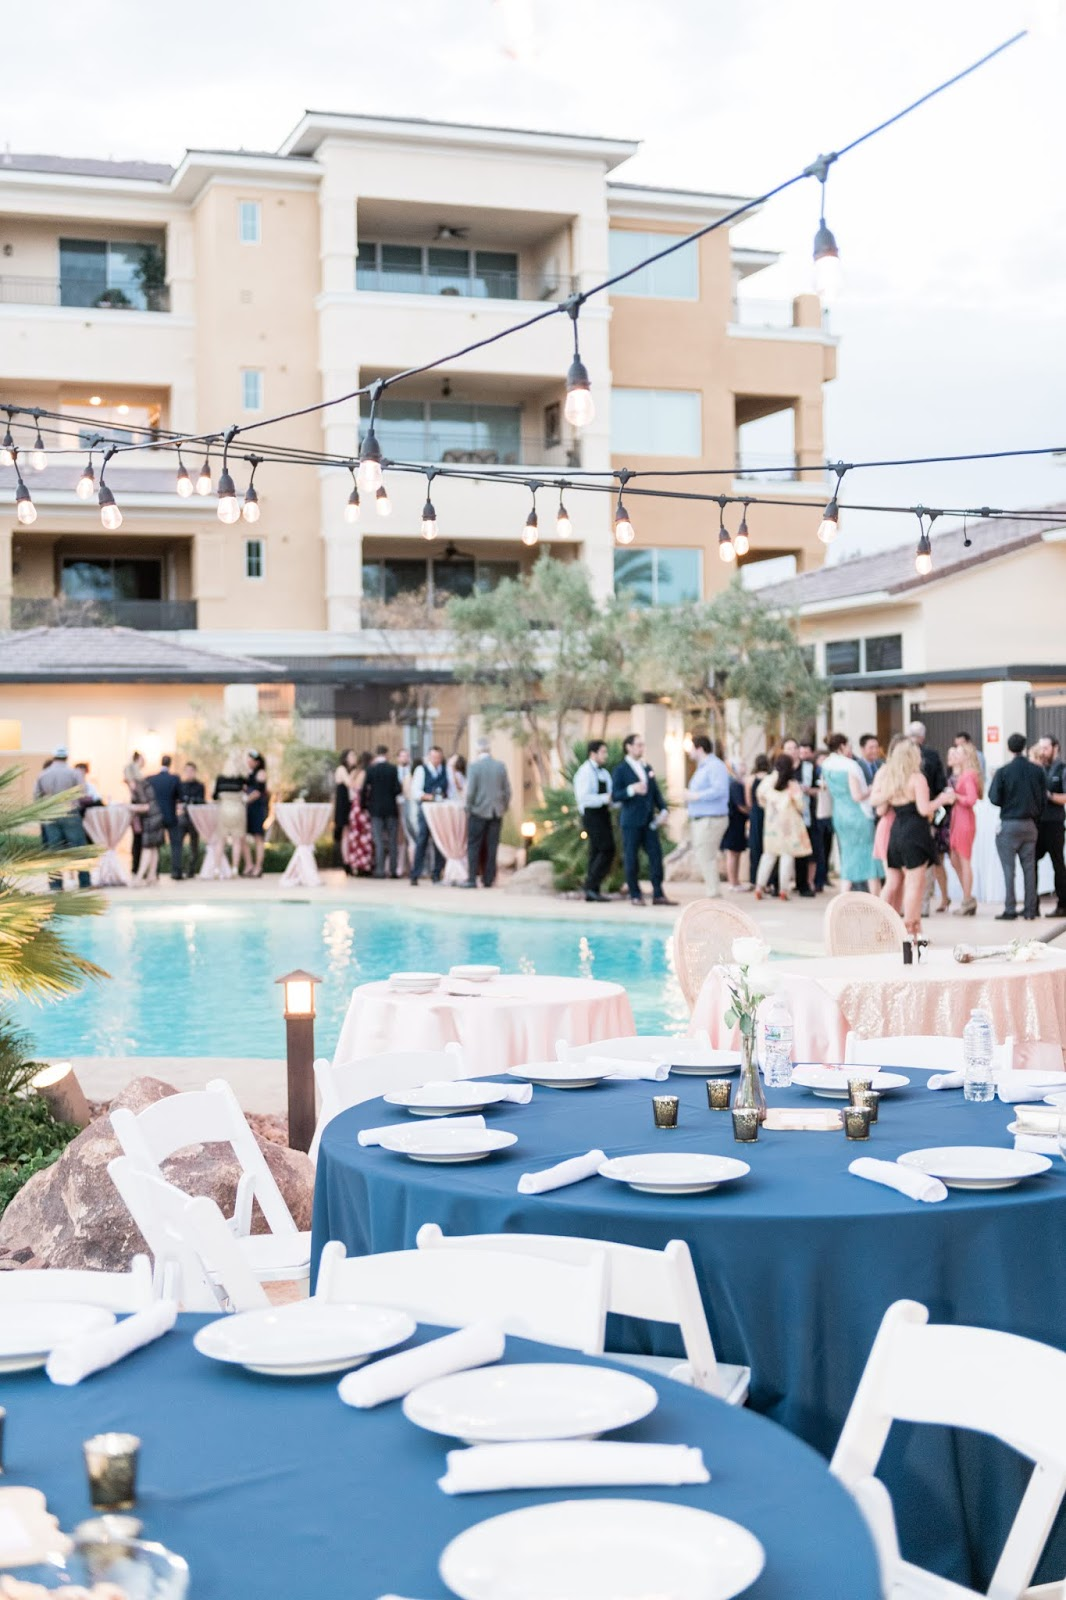 Poolside Las Vegas Wedding Reception